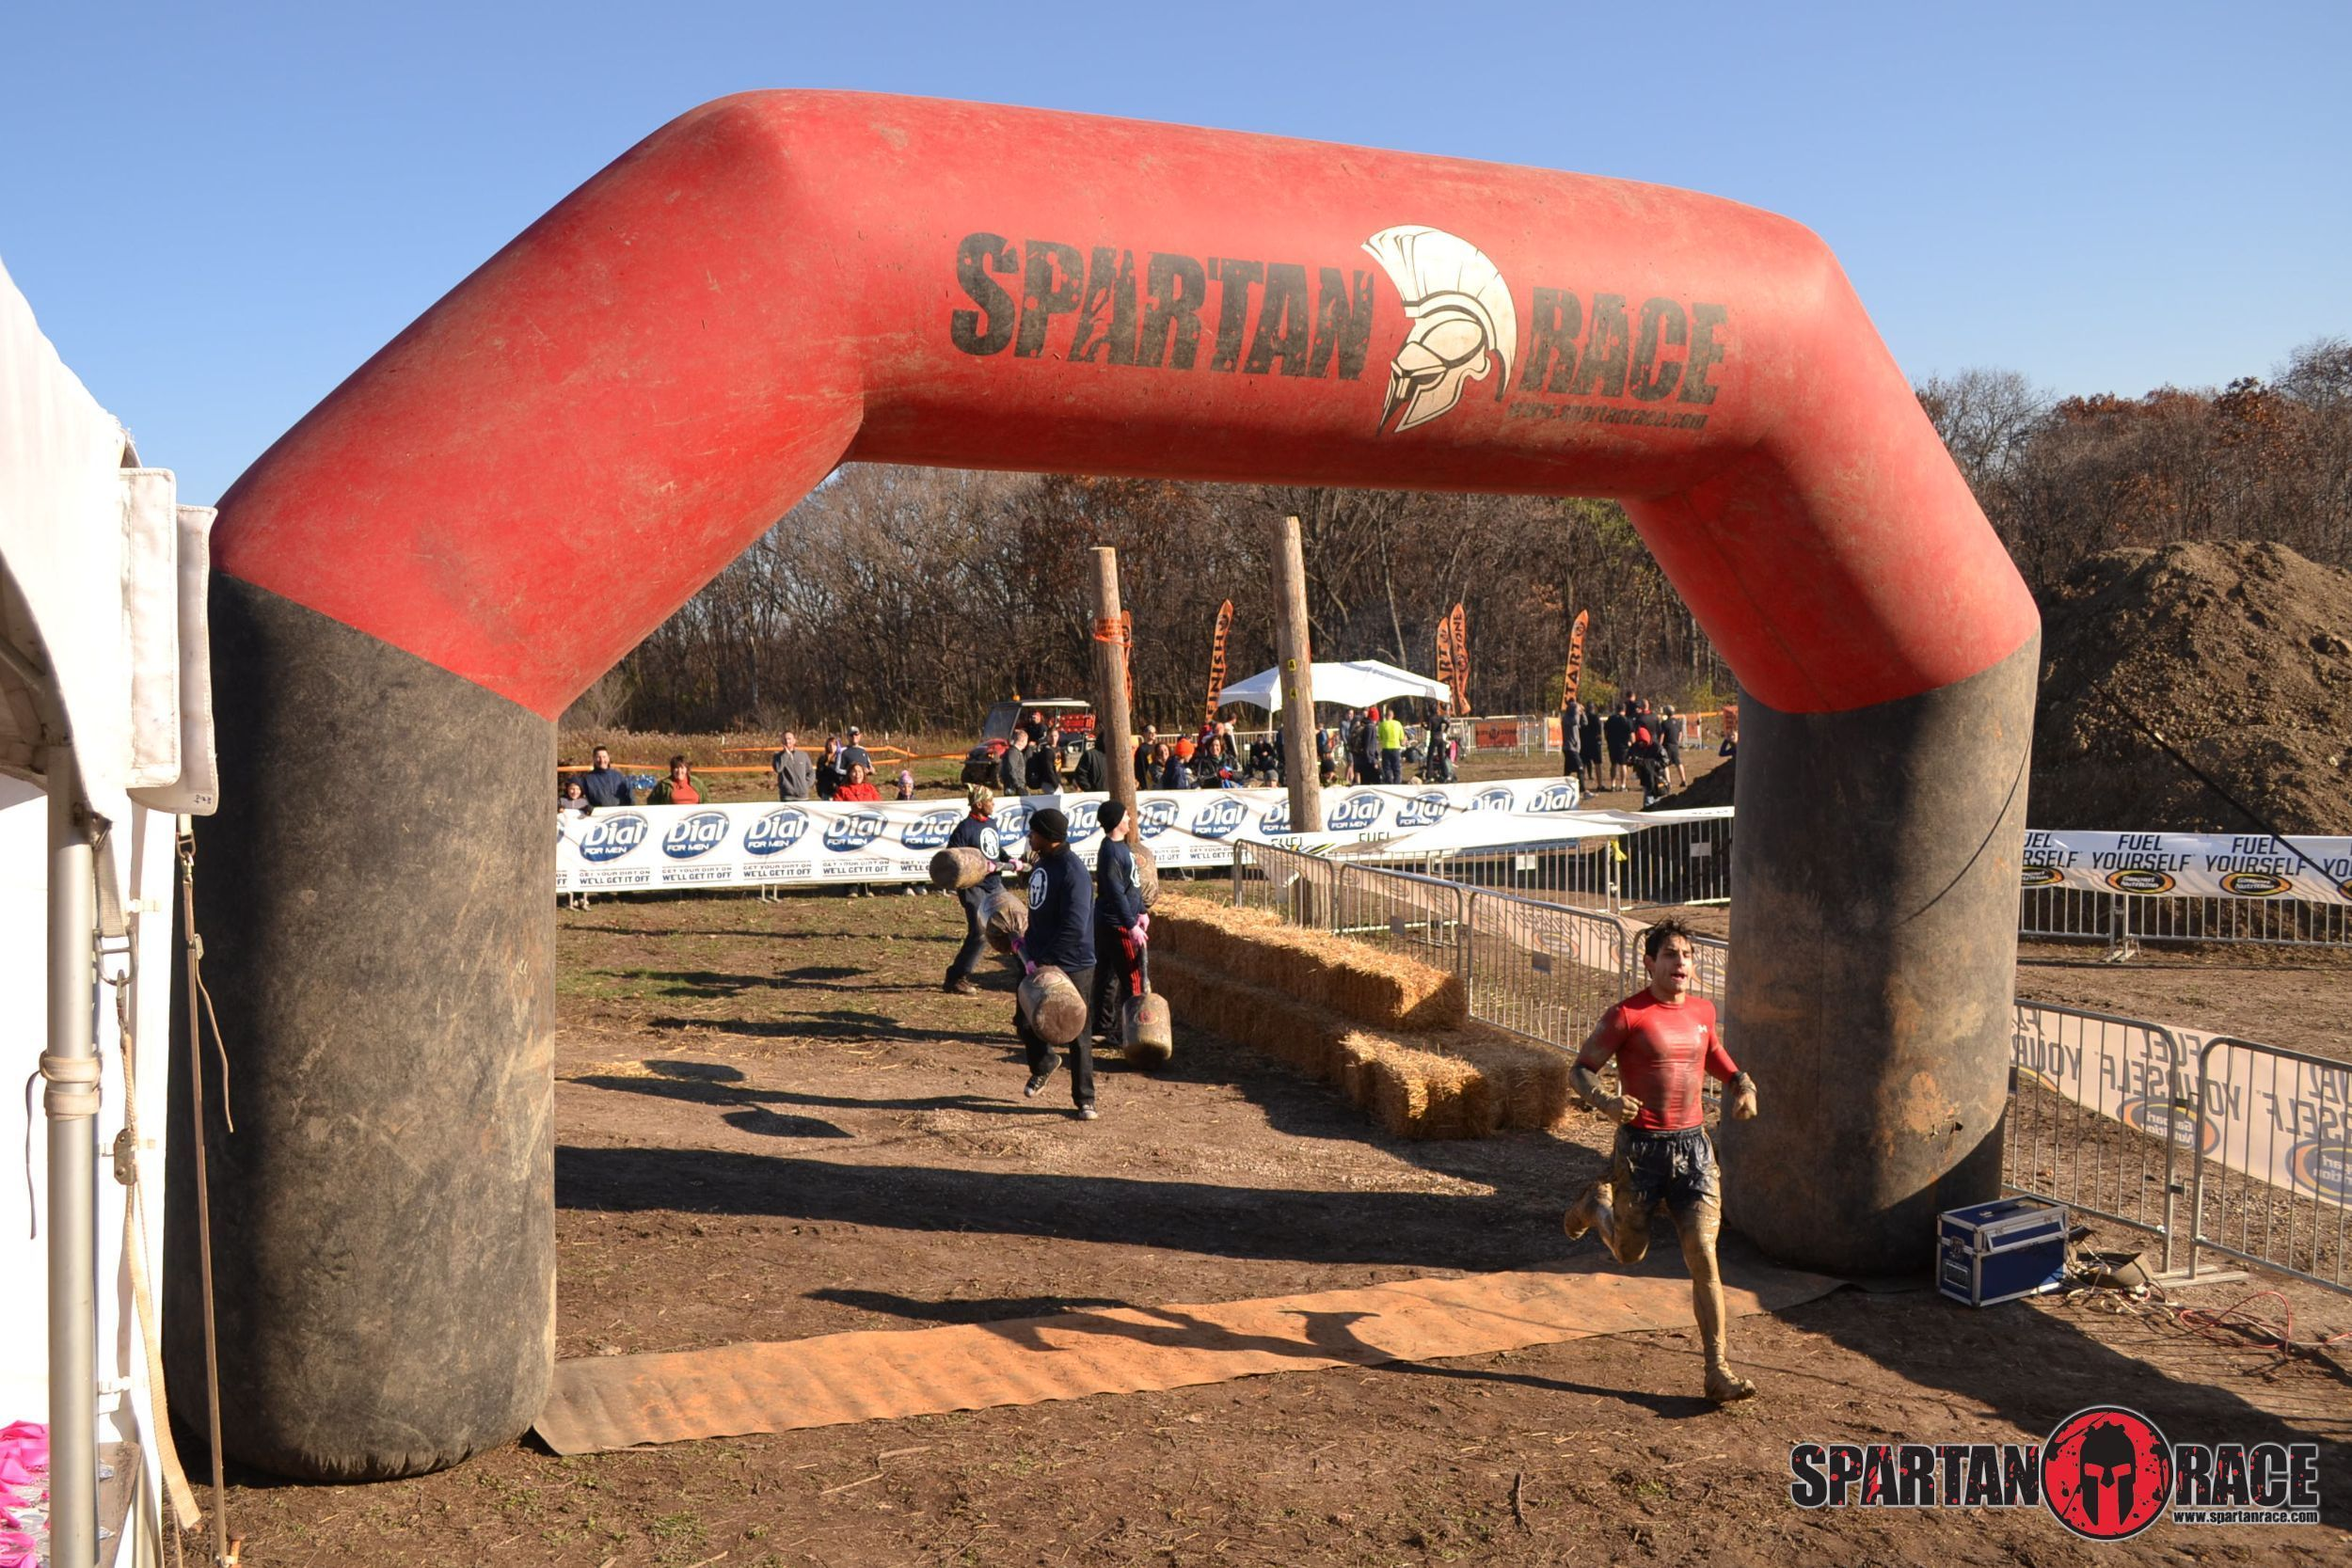 Midwest Super Spartan Race – Best Obstacle Race of the Year?